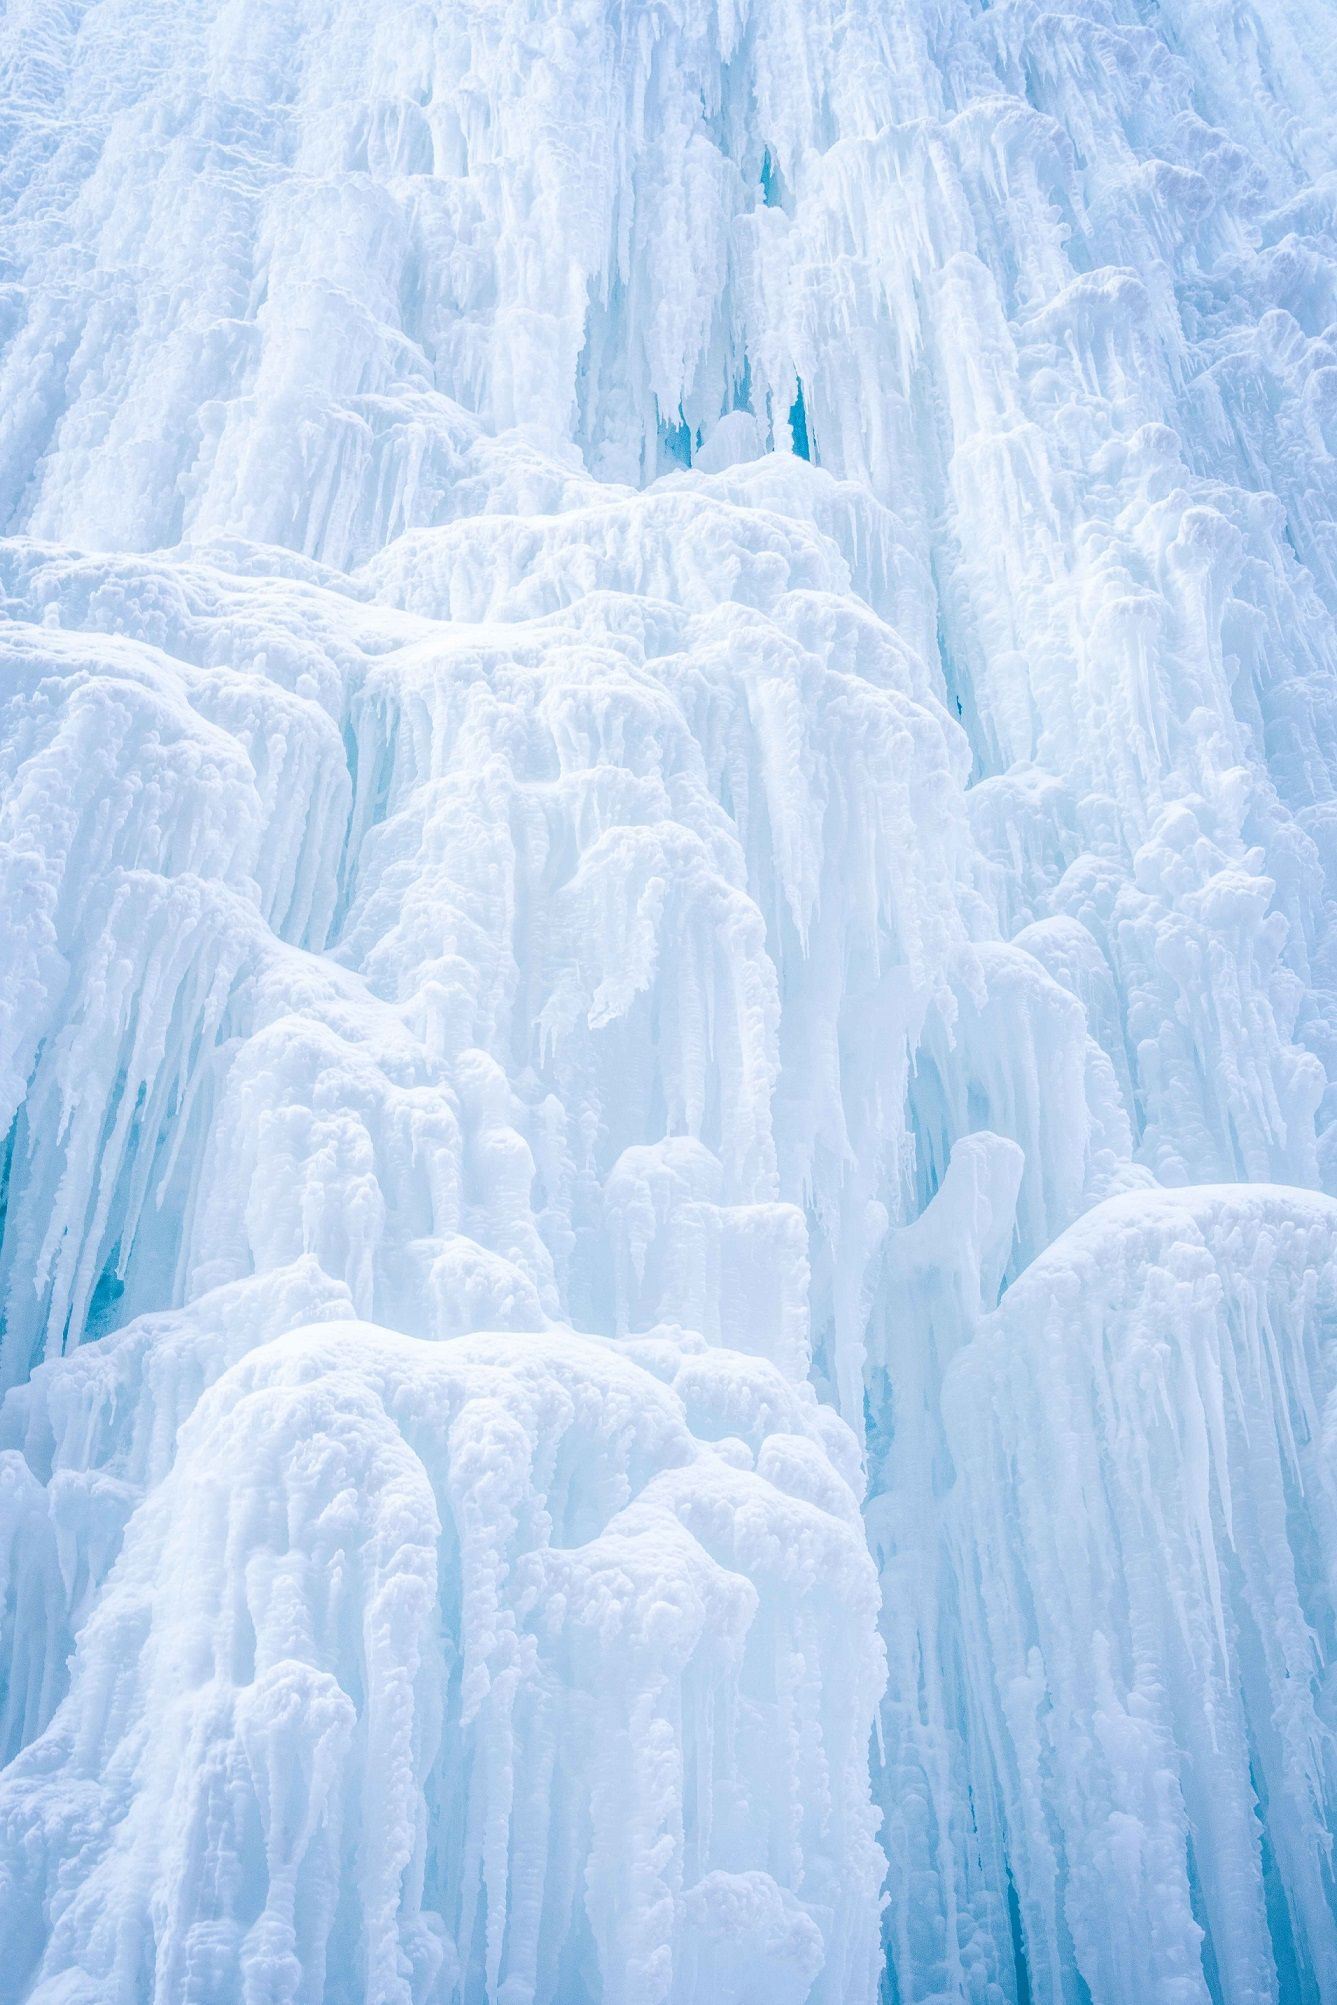 Frozen Waterfall,Luca Marziale,Photography